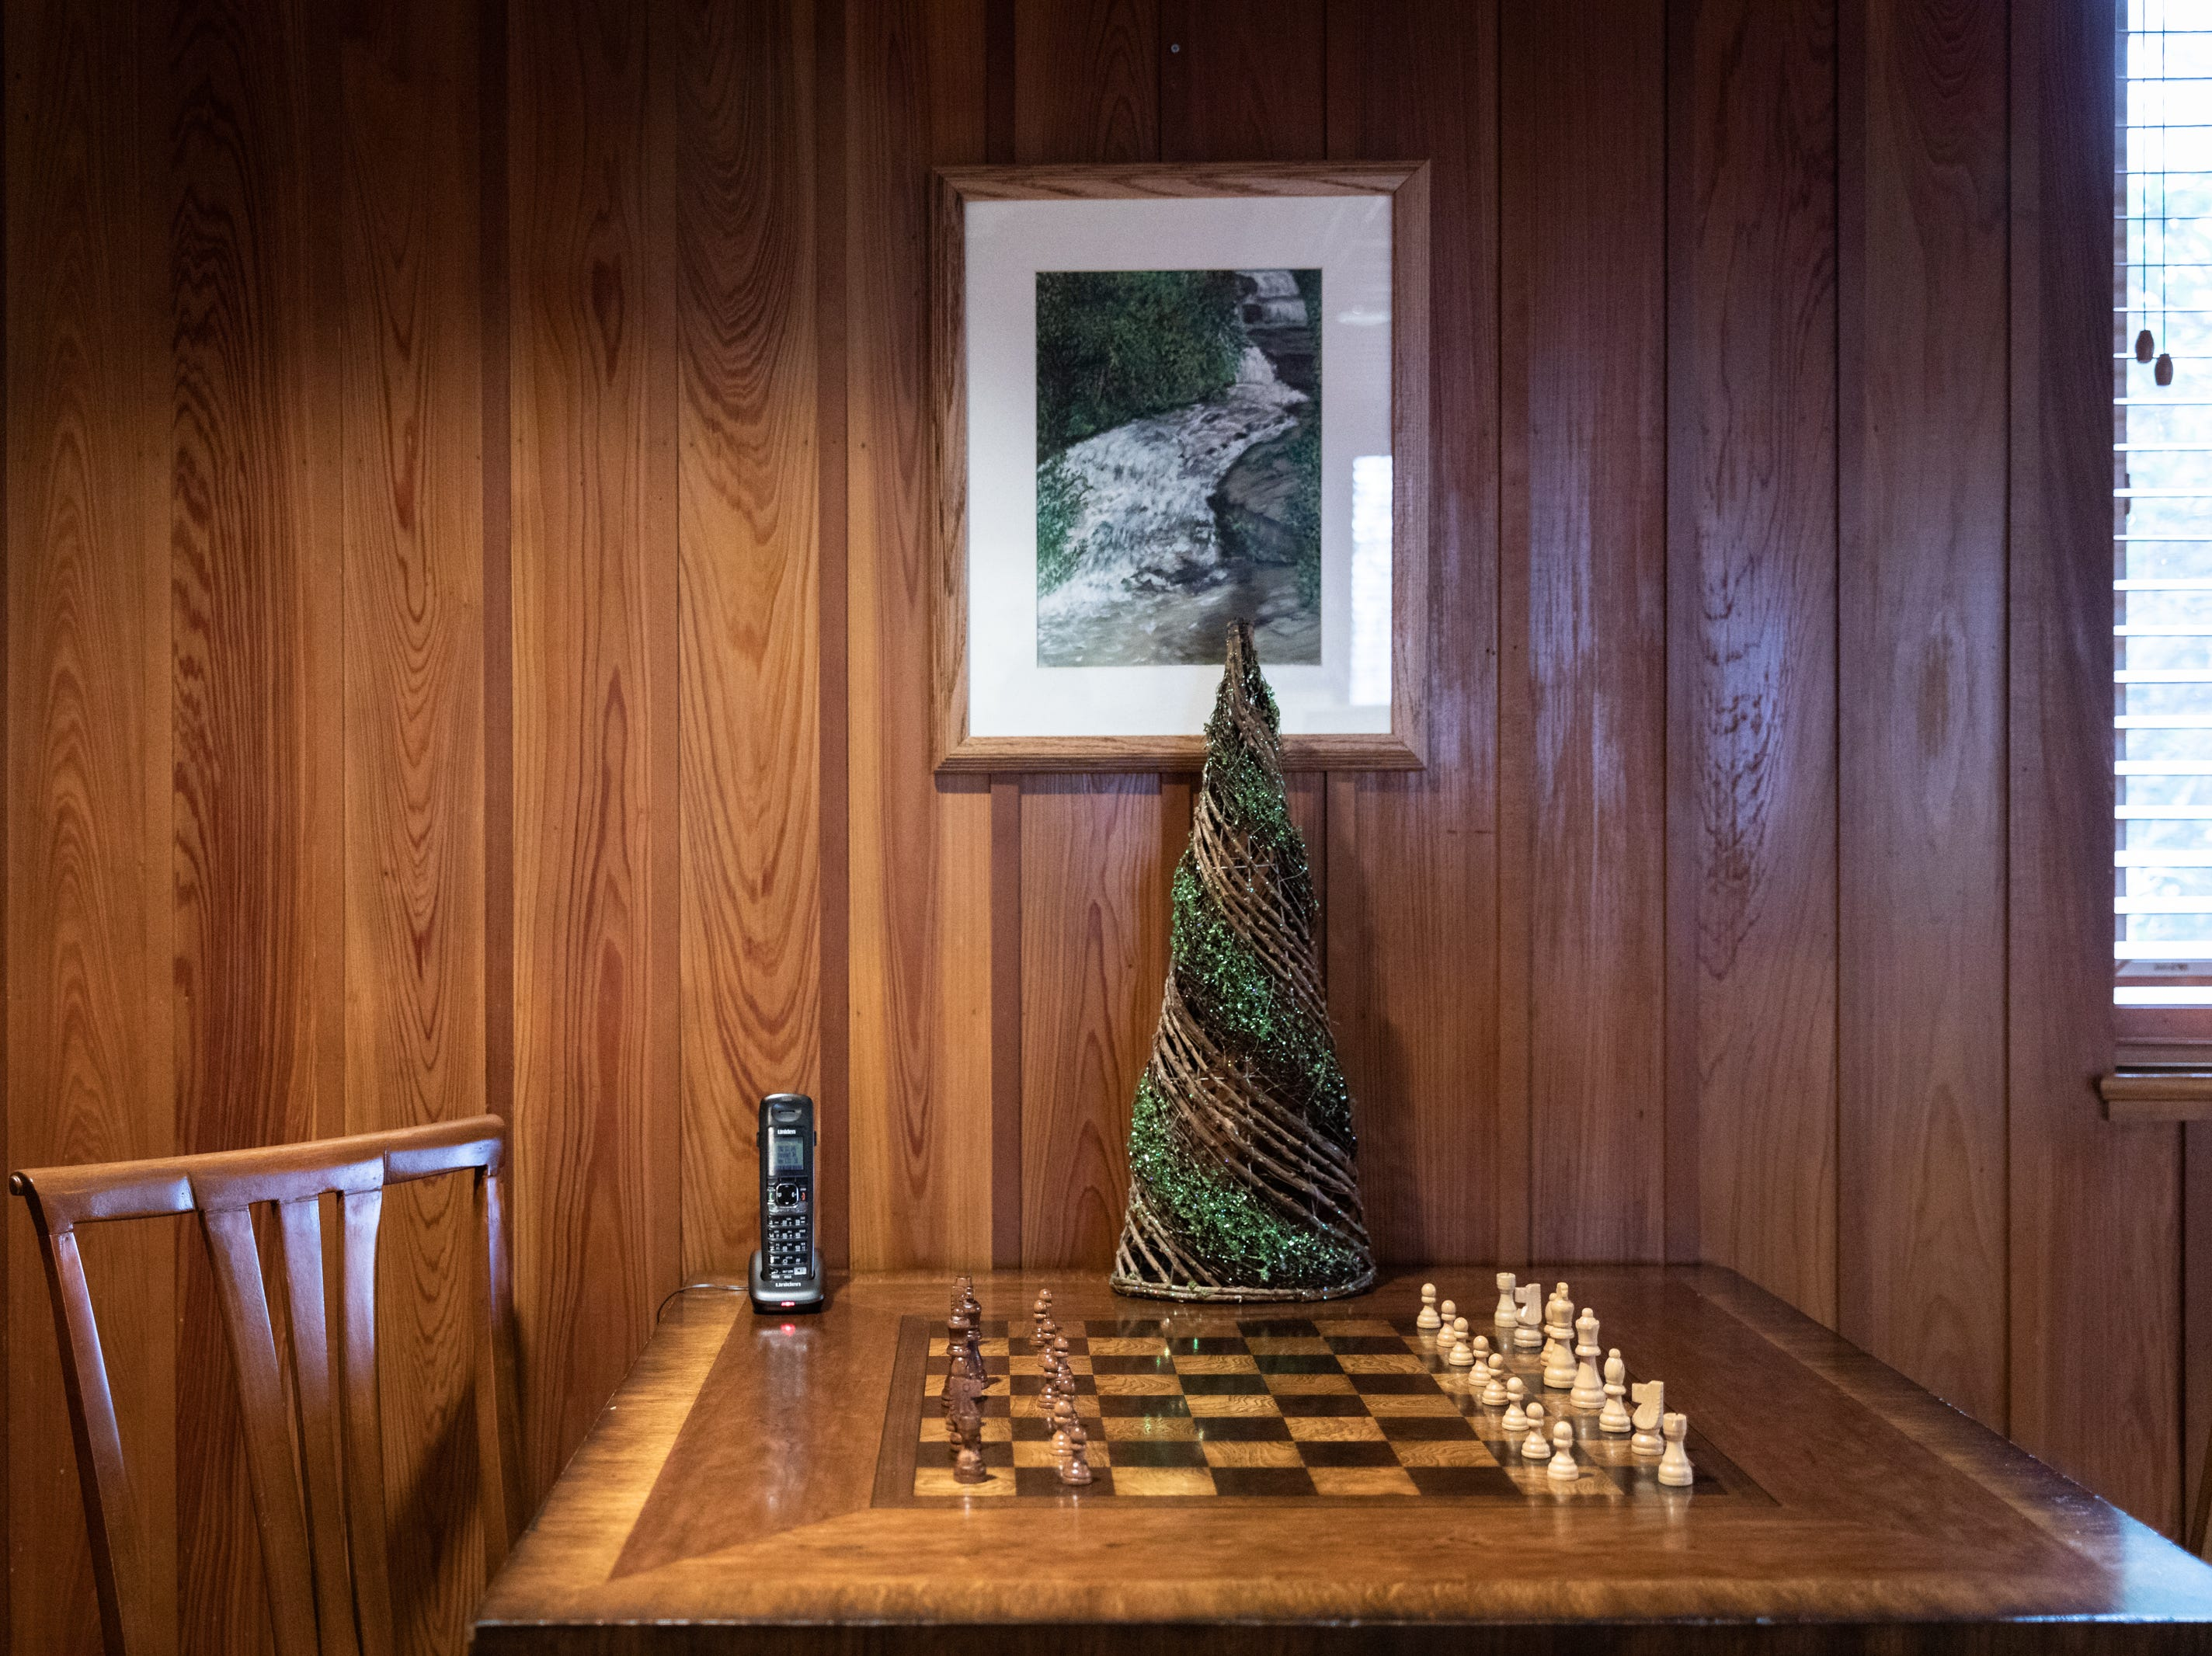 A chess board in the den of the Governor's Western Residence on Patton Mountain Road in Asheville, adorned with a Christmas tree.